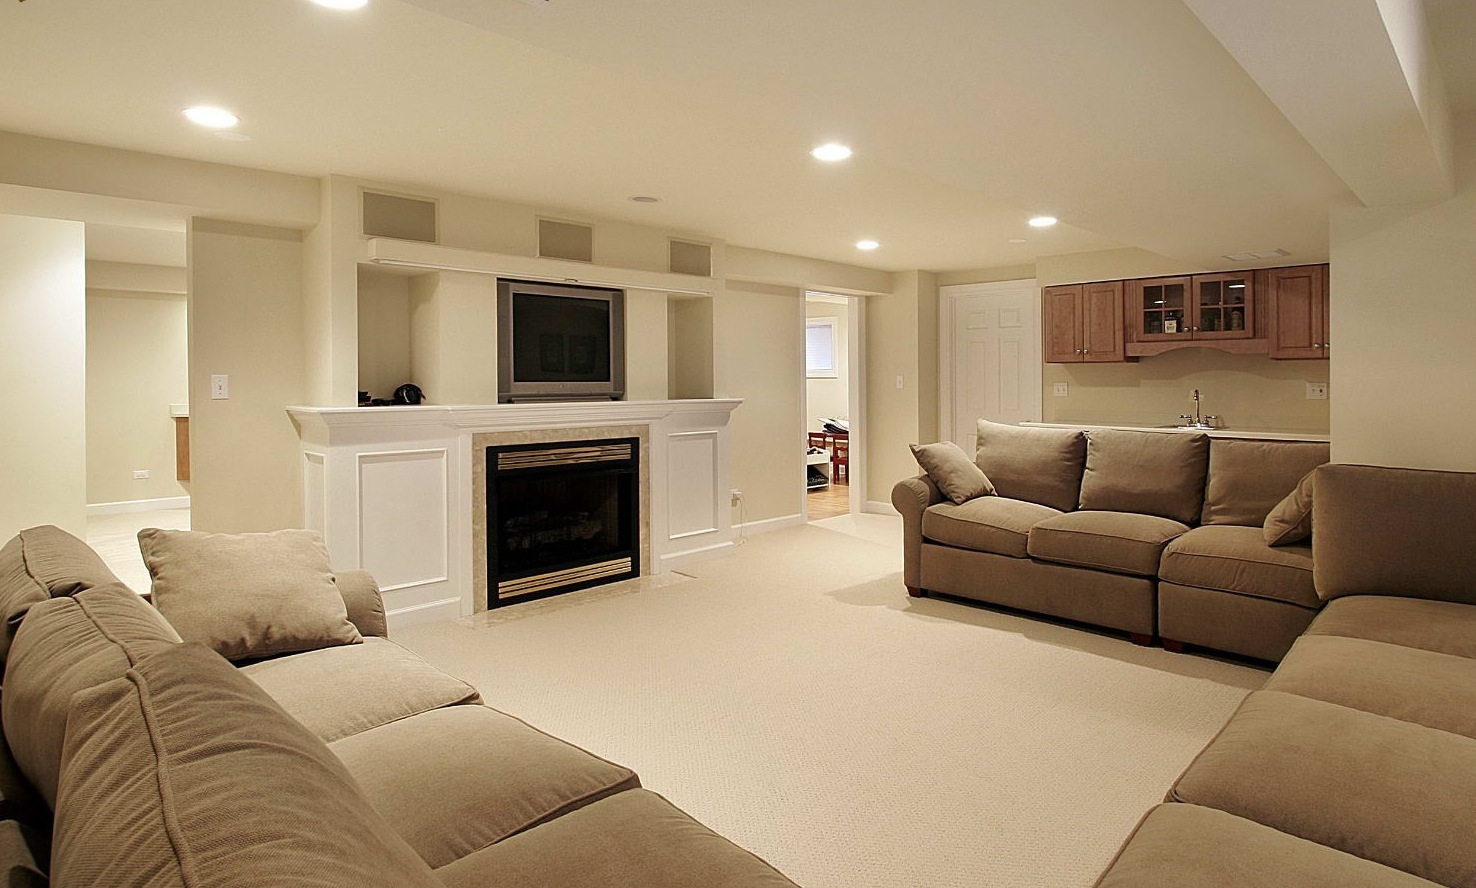 Remodeling Basement Ideas Prepossessing 30 Basement Remodeling Ideas & Inspiration Inspiration